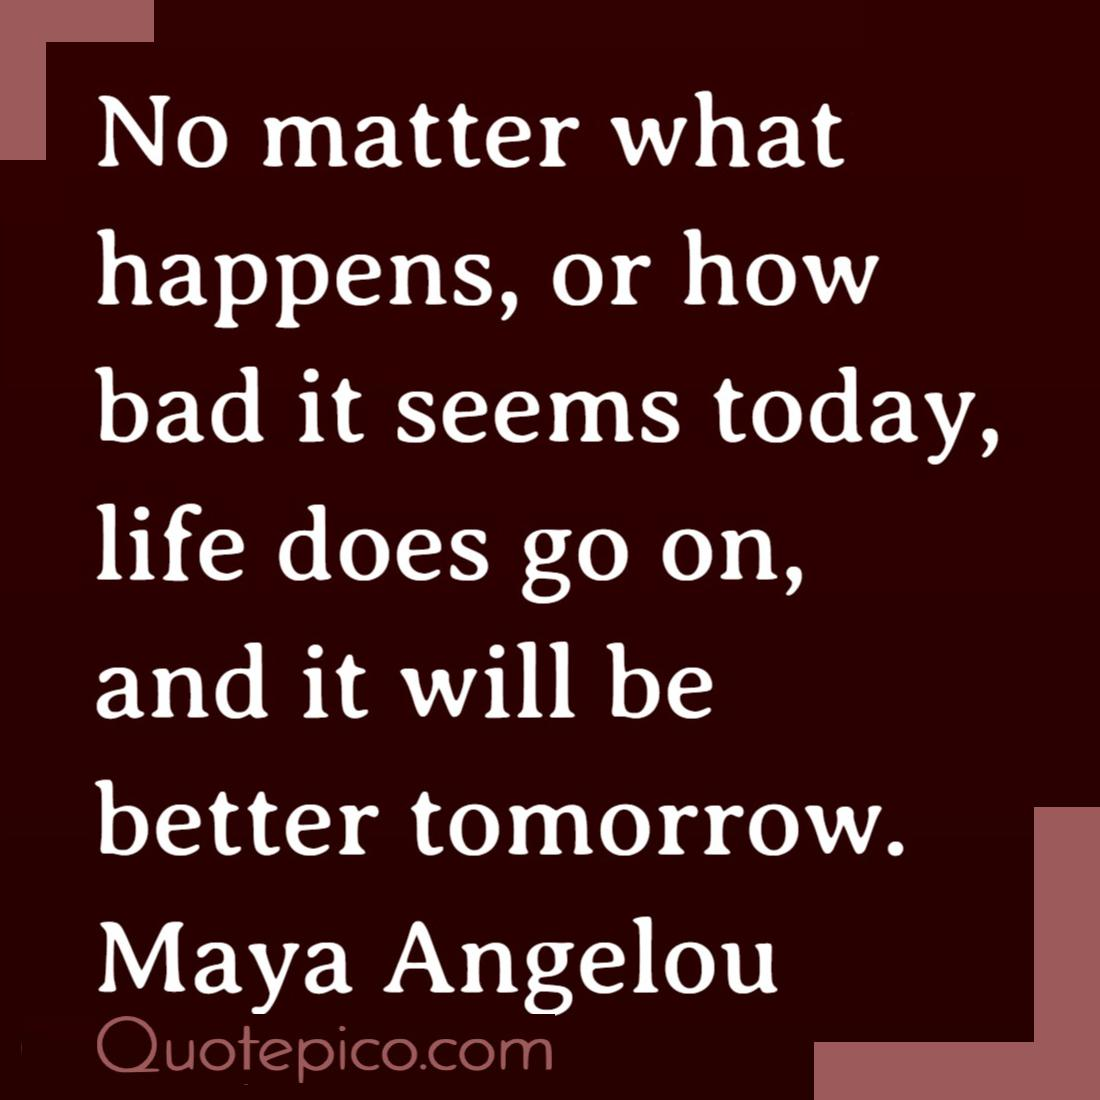 [Image] No matter how bad it seems today…